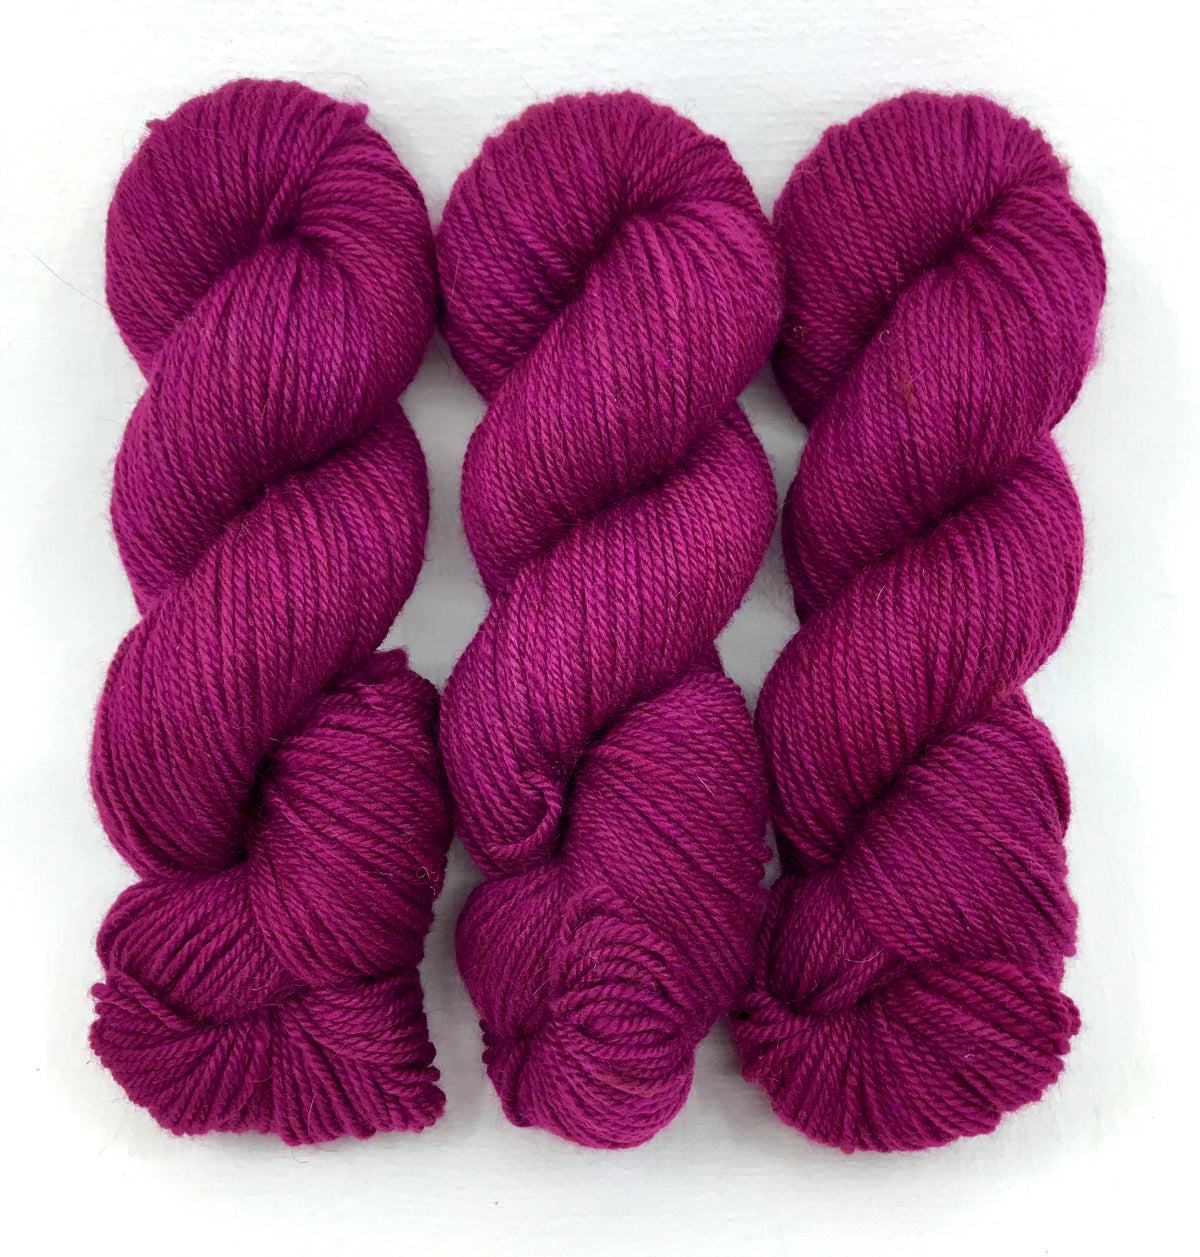 Berrylicious-Lascaux Worsted - Dyed Stock